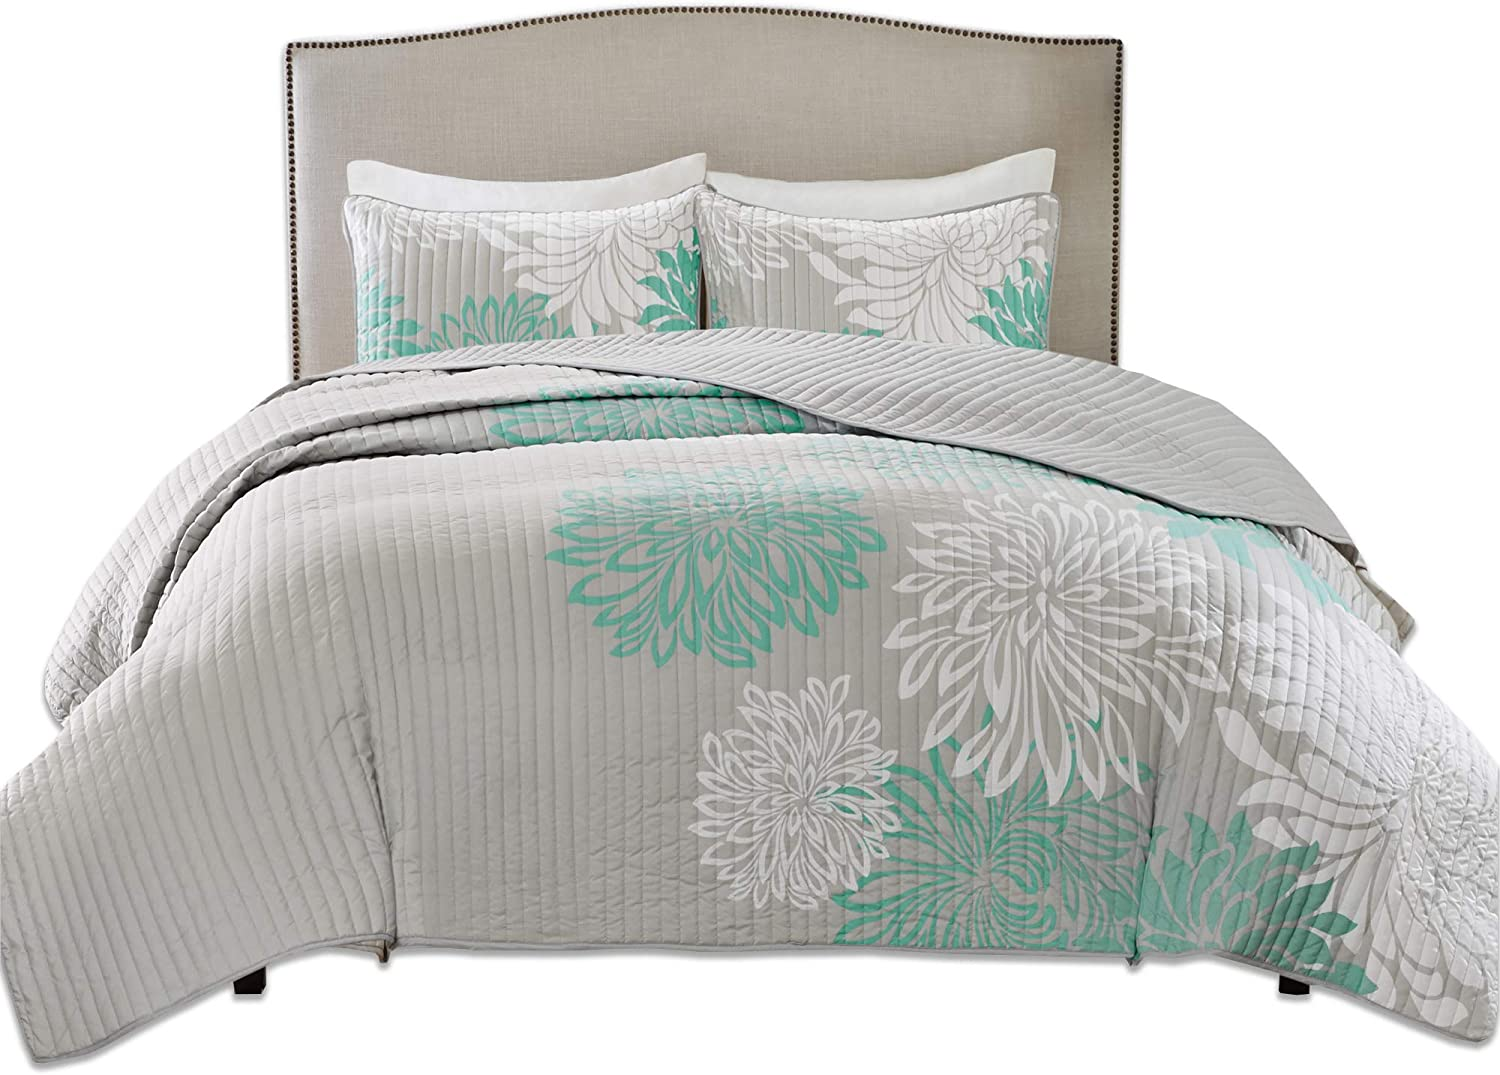 Comfort Spaces Enya 3 Piece Quilt Coverlet Bedspread Ultra Soft Floral Printed Pattern Bedding Set, Full/Queen, Aqua-Grey